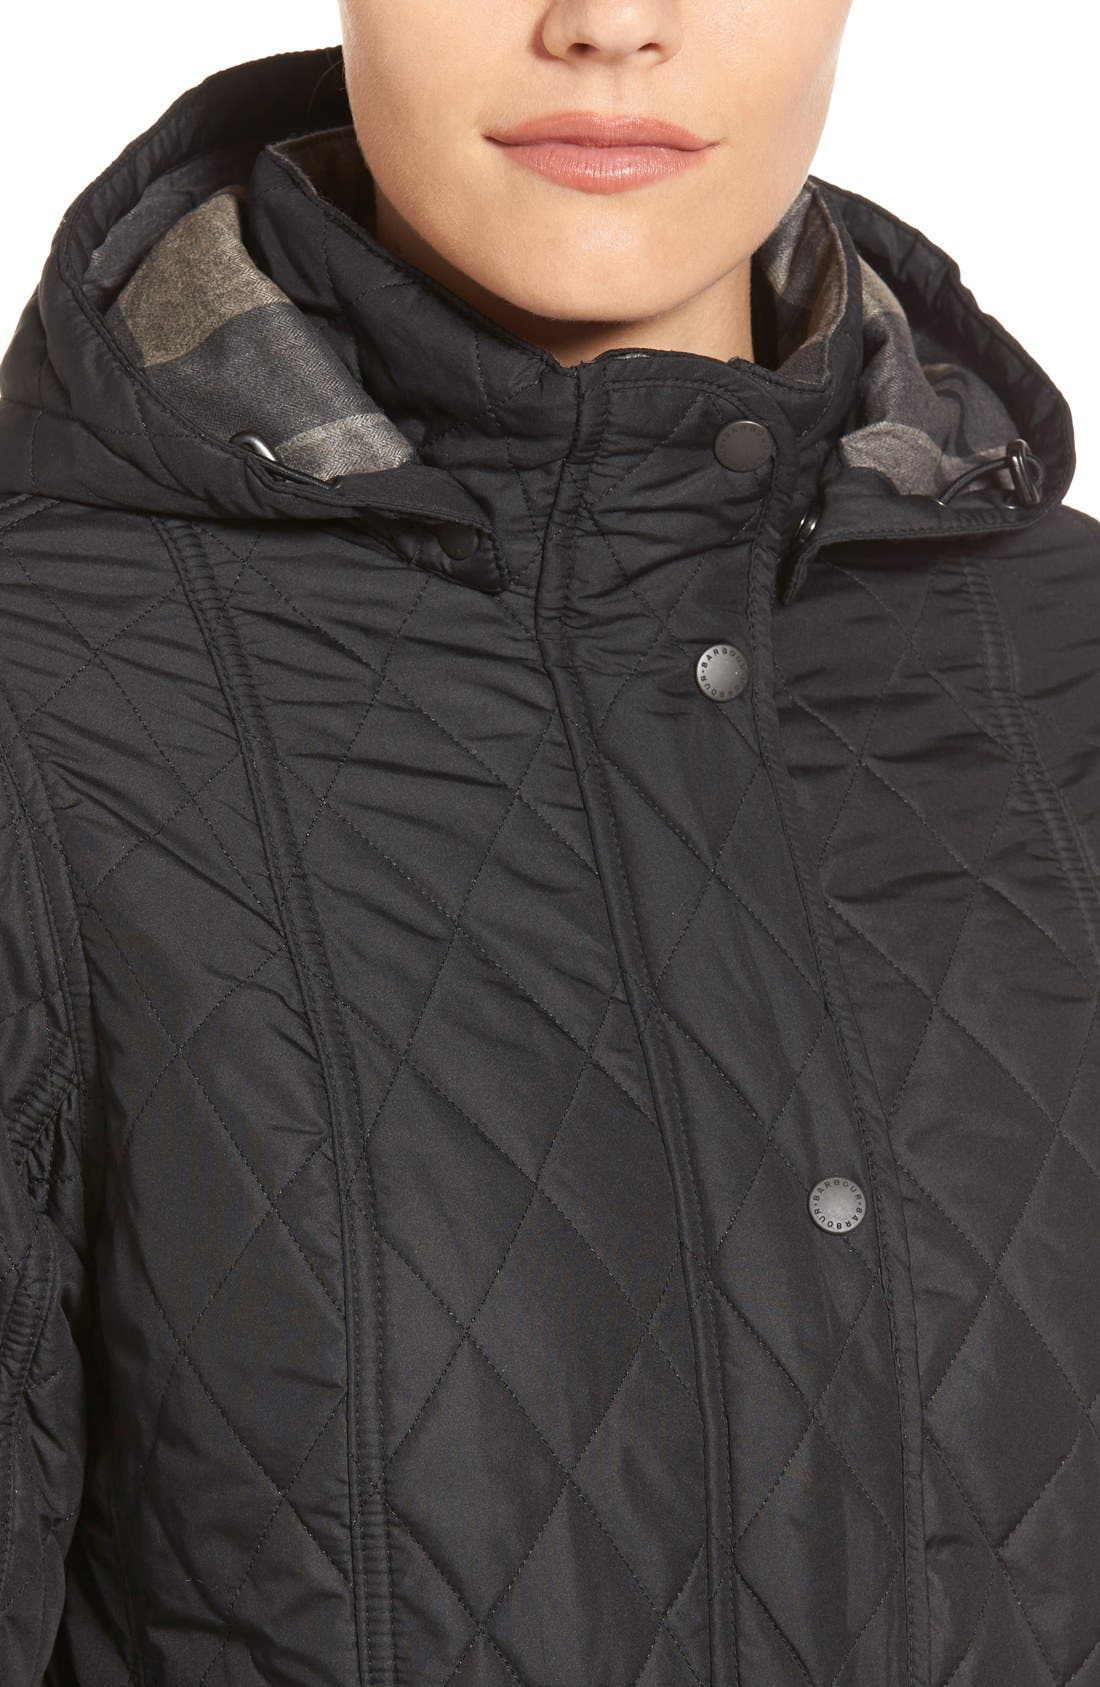 'Millfire' Hooded Quilted Jacket,                             Alternate thumbnail 4, color,                             Black